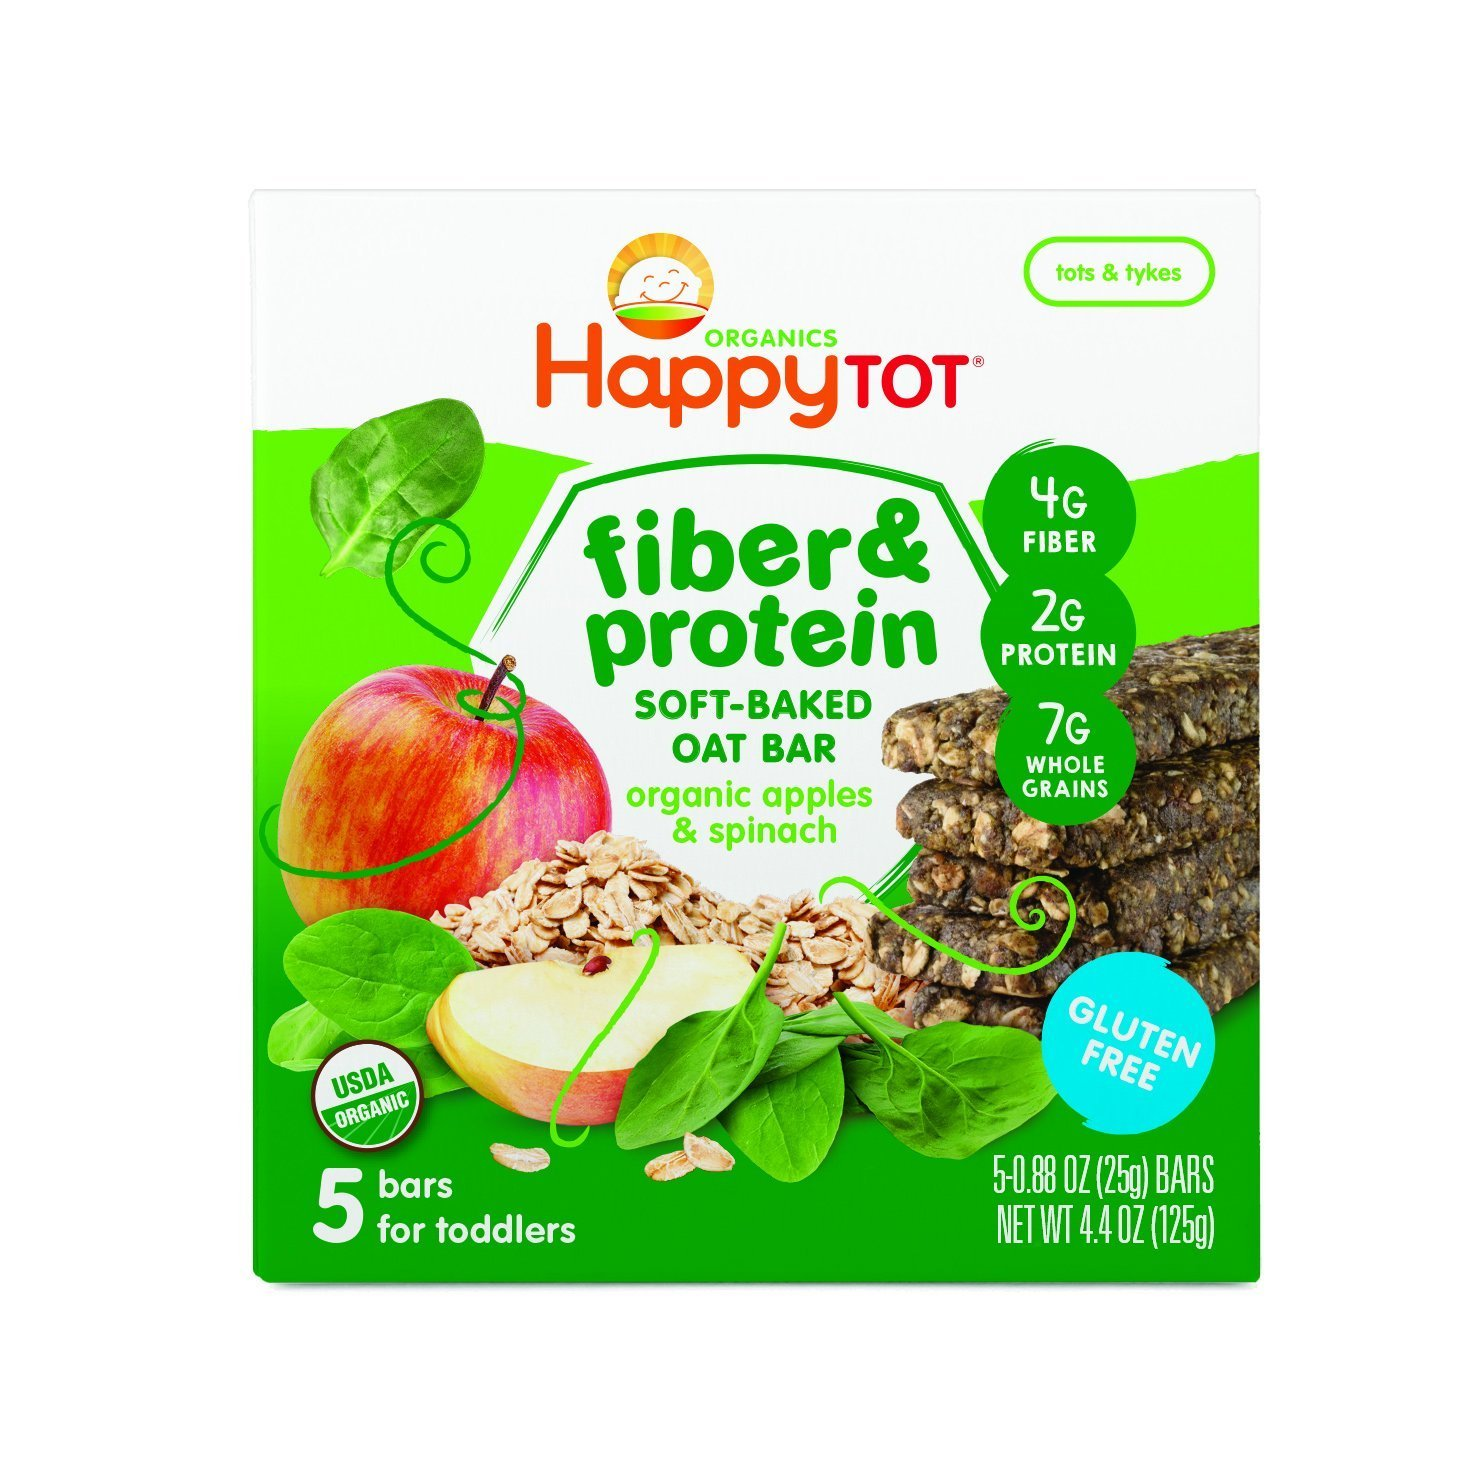 Happy Tot Organic Fiber & Protein Soft-Baked Oat Bars, Organic Toddler Snack, Apple & Spinach, 5 Count Happy Baby